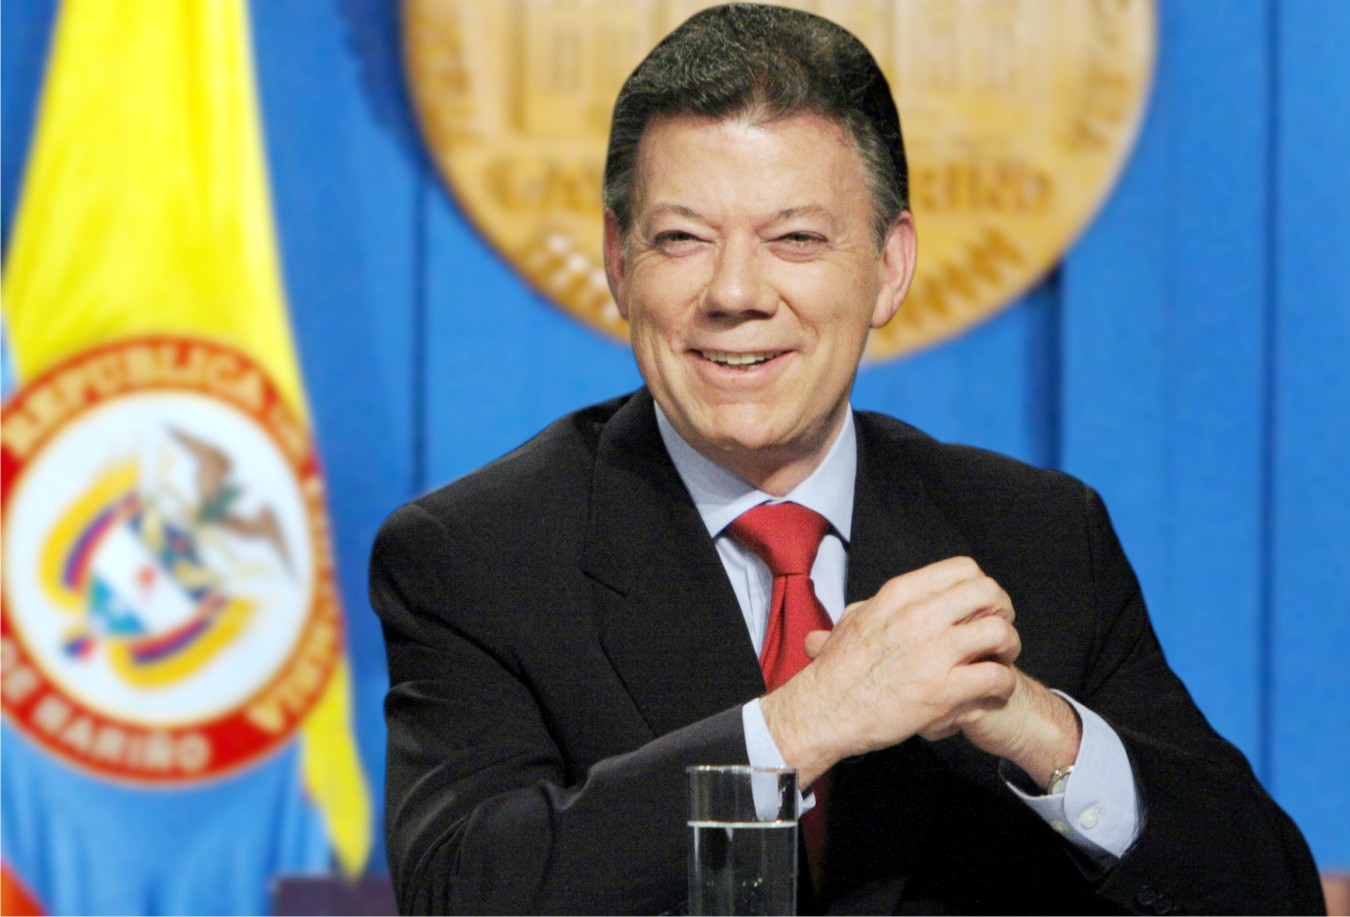 Juan Manuel Santos and 10 former presidents lead the NGD Roundtable about the future of democracy in the Americas